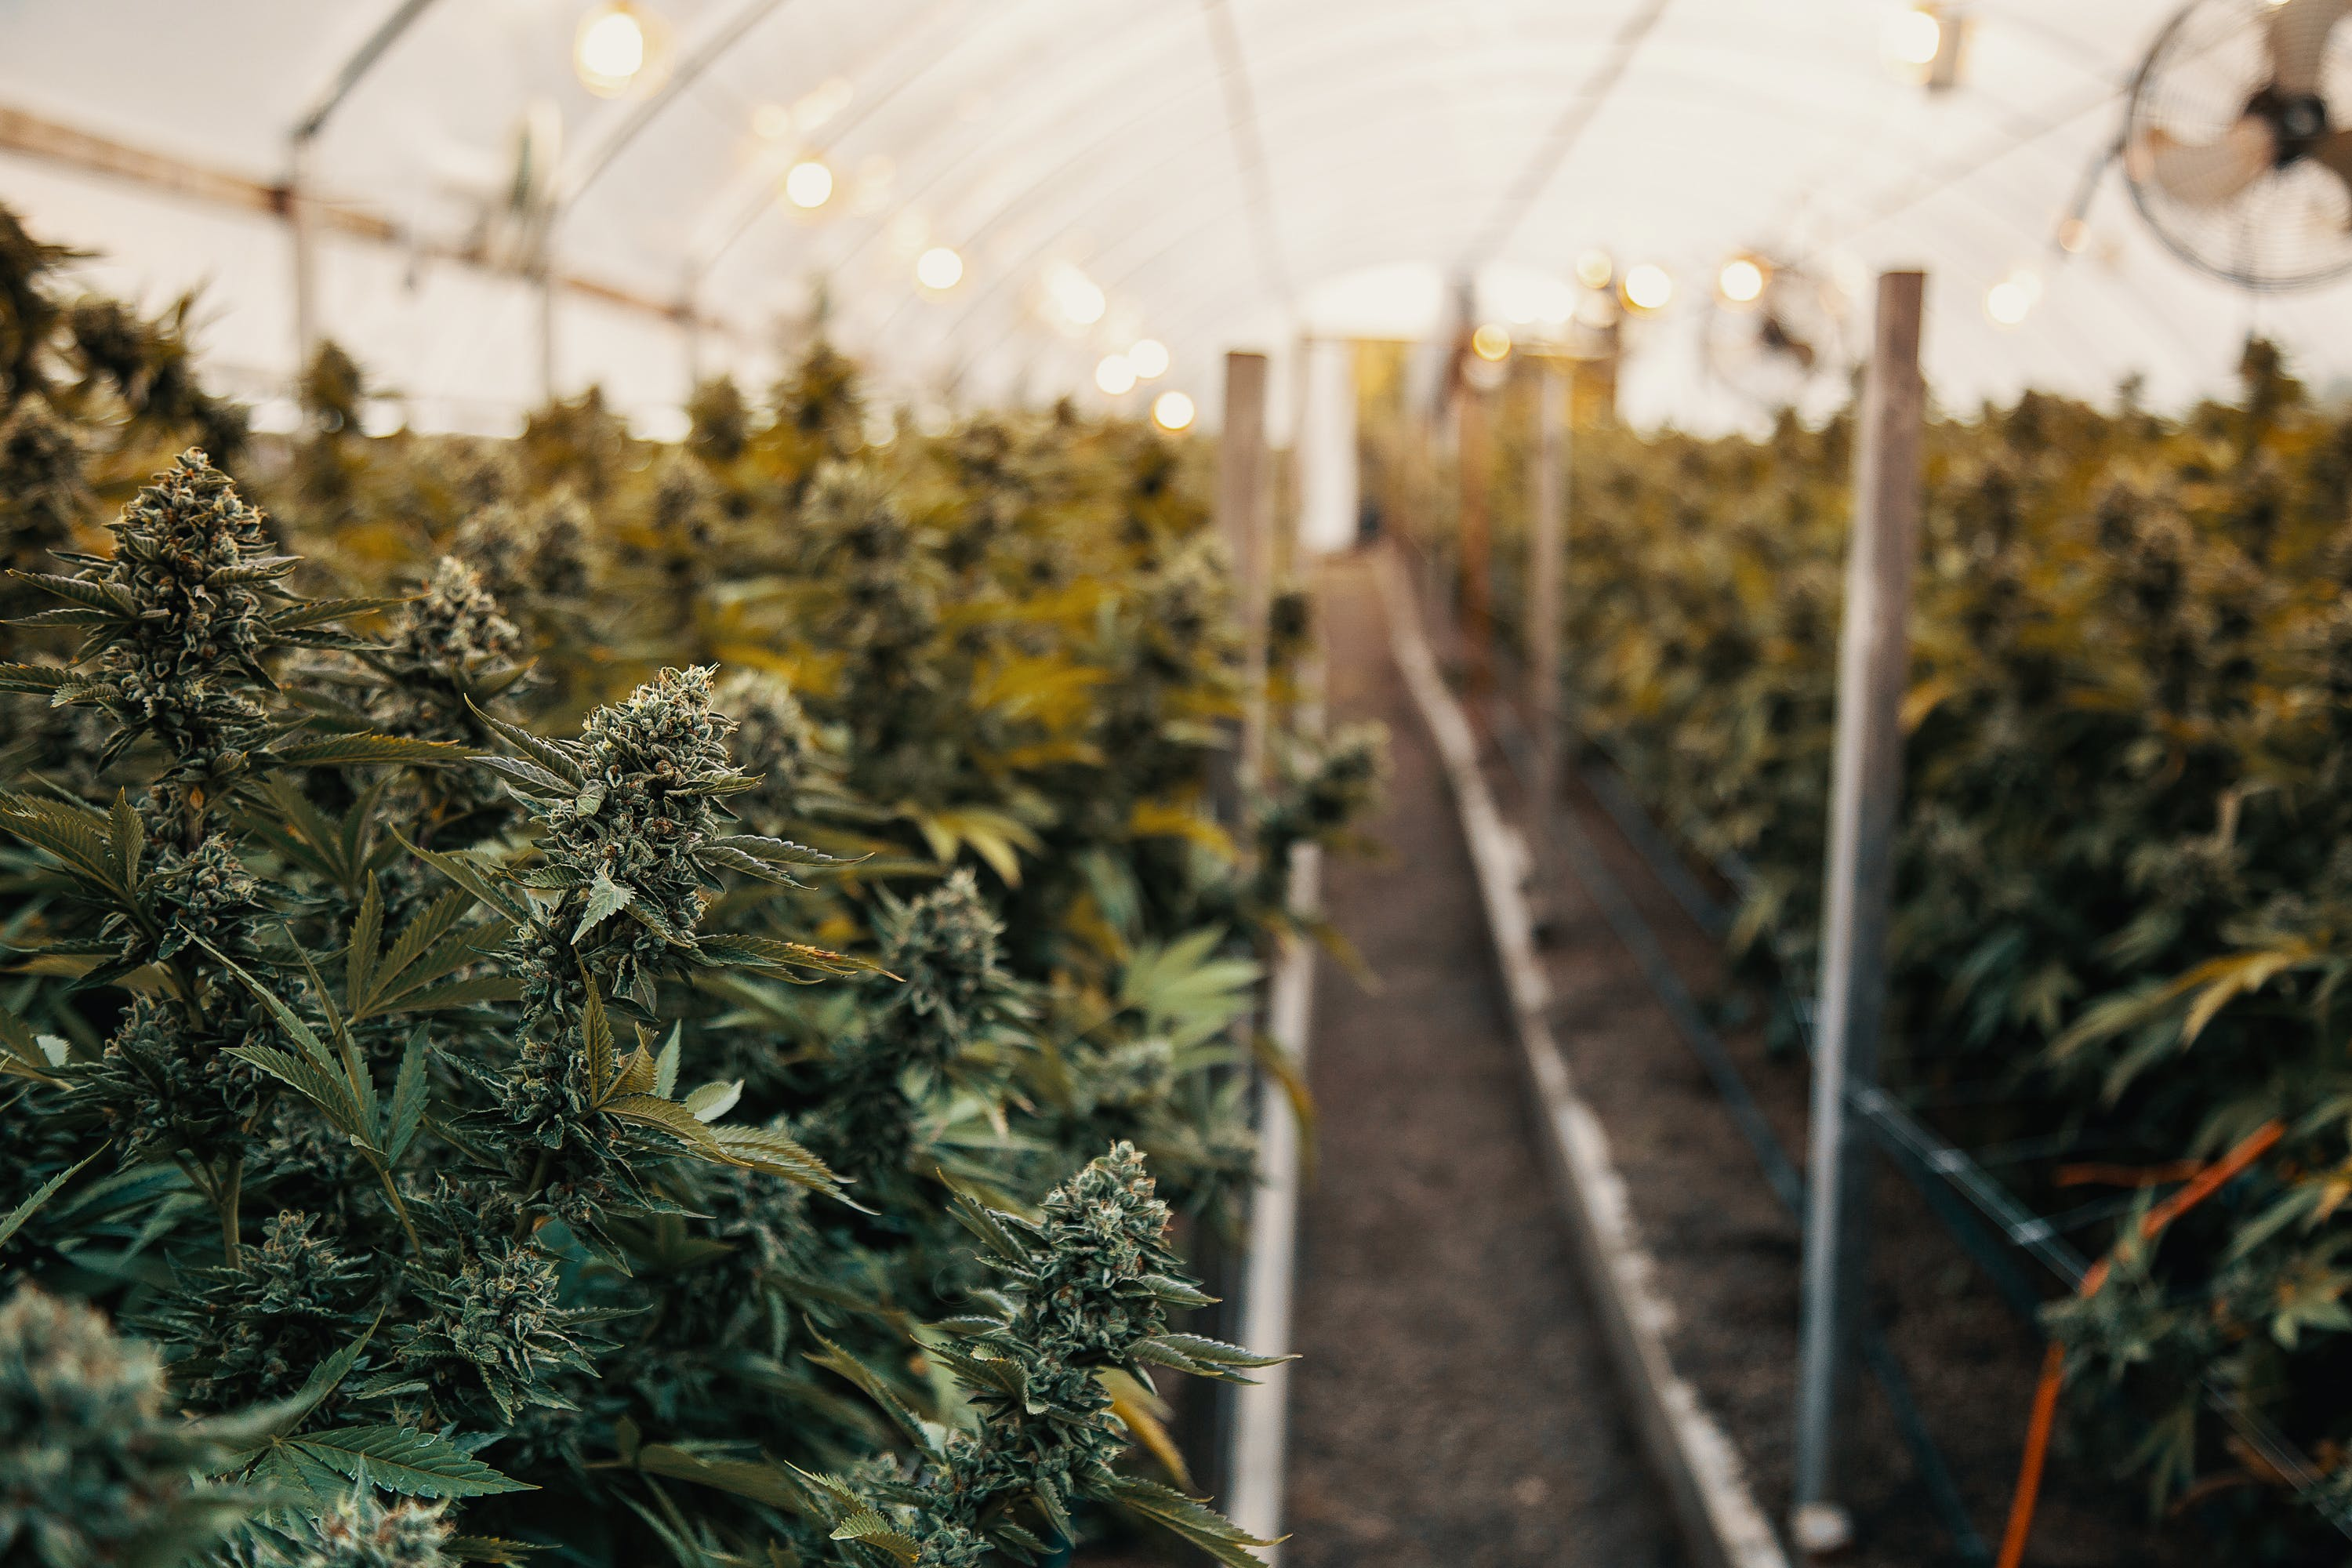 Growing Indoor vs. Outdoor Weed What%E2%80%99s the Difference 1 Growing Indoor vs. Outdoor Weed: Whats the Difference?